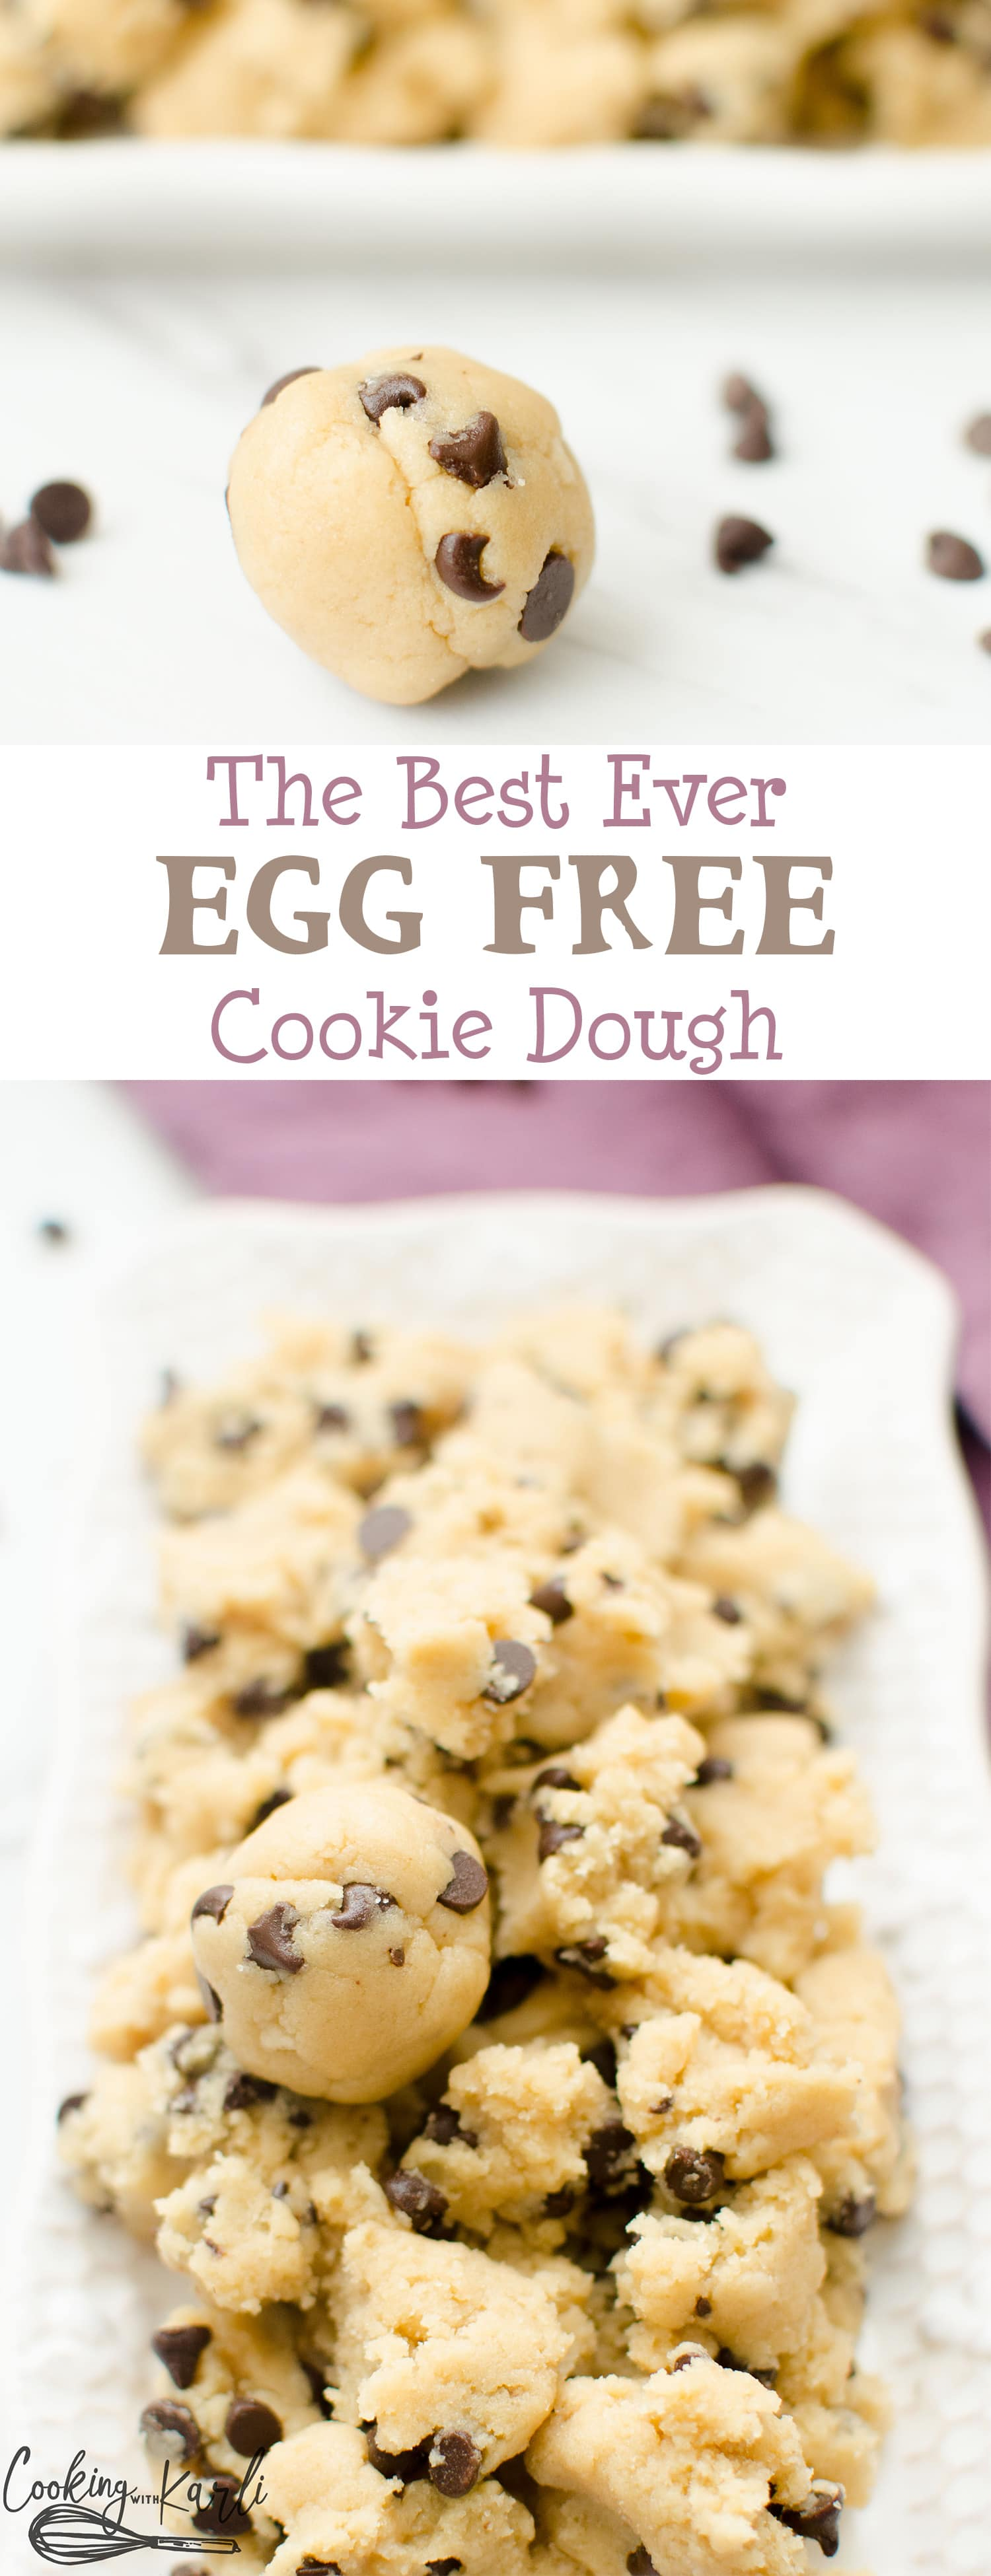 Edible Egg Free Cookie Dough is made for EATING! The taste and texture is just like the real deal- no one will be able to tell the difference!-Cooking with Karli- #recipe #eggless #cookiedough #dessert #pregnancy